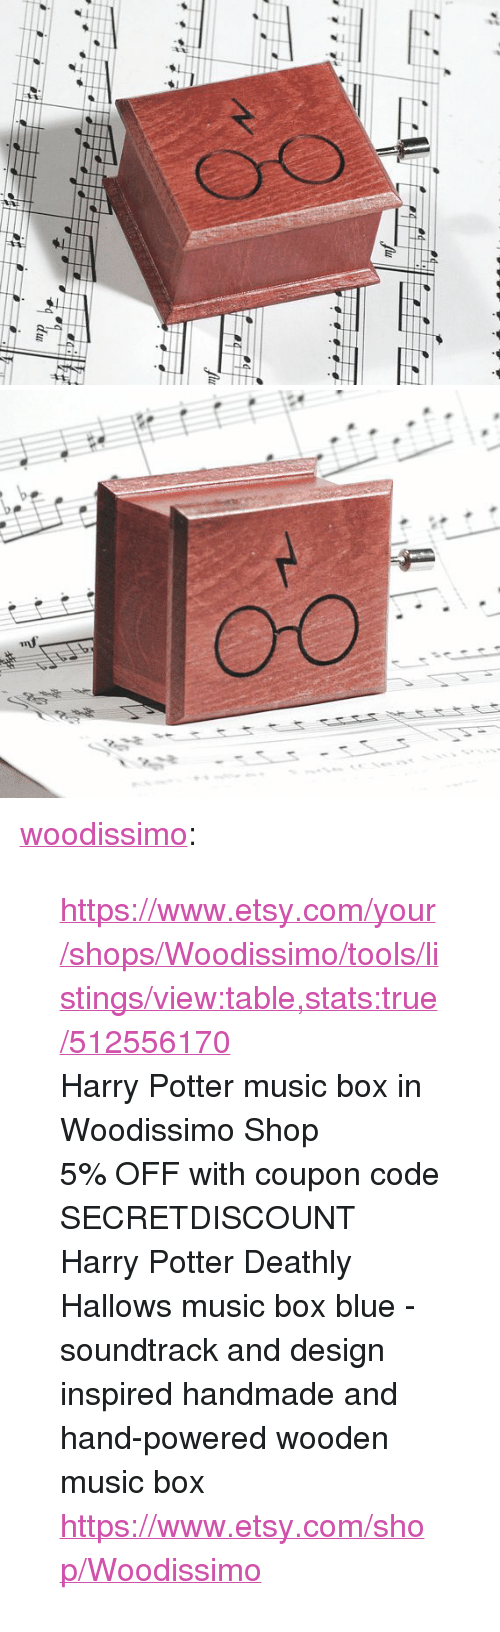 "Harry Potter, Music, and True: <p><a href=""https://woodissimo.tumblr.com/post/159857412555/httpswwwetsycomyourshopswoodissimotoolsli"" class=""tumblr_blog"">woodissimo</a>:</p><blockquote> <p><a href=""https://www.etsy.com/your/shops/Woodissimo/tools/listings/view:table,stats:true/512556170"">https://www.etsy.com/your/shops/Woodissimo/tools/listings/view:table,stats:true/512556170</a></p> <p>Harry Potter music box in Woodissimo Shop</p> <p>5% OFF with coupon code SECRETDISCOUNT<br/>Harry Potter Deathly Hallows music box blue - soundtrack and design inspired handmade and hand-powered wooden music box <a href=""https://www.etsy.com/shop/Woodissimo"">https://www.etsy.com/shop/Woodissimo</a><br/></p> </blockquote>"